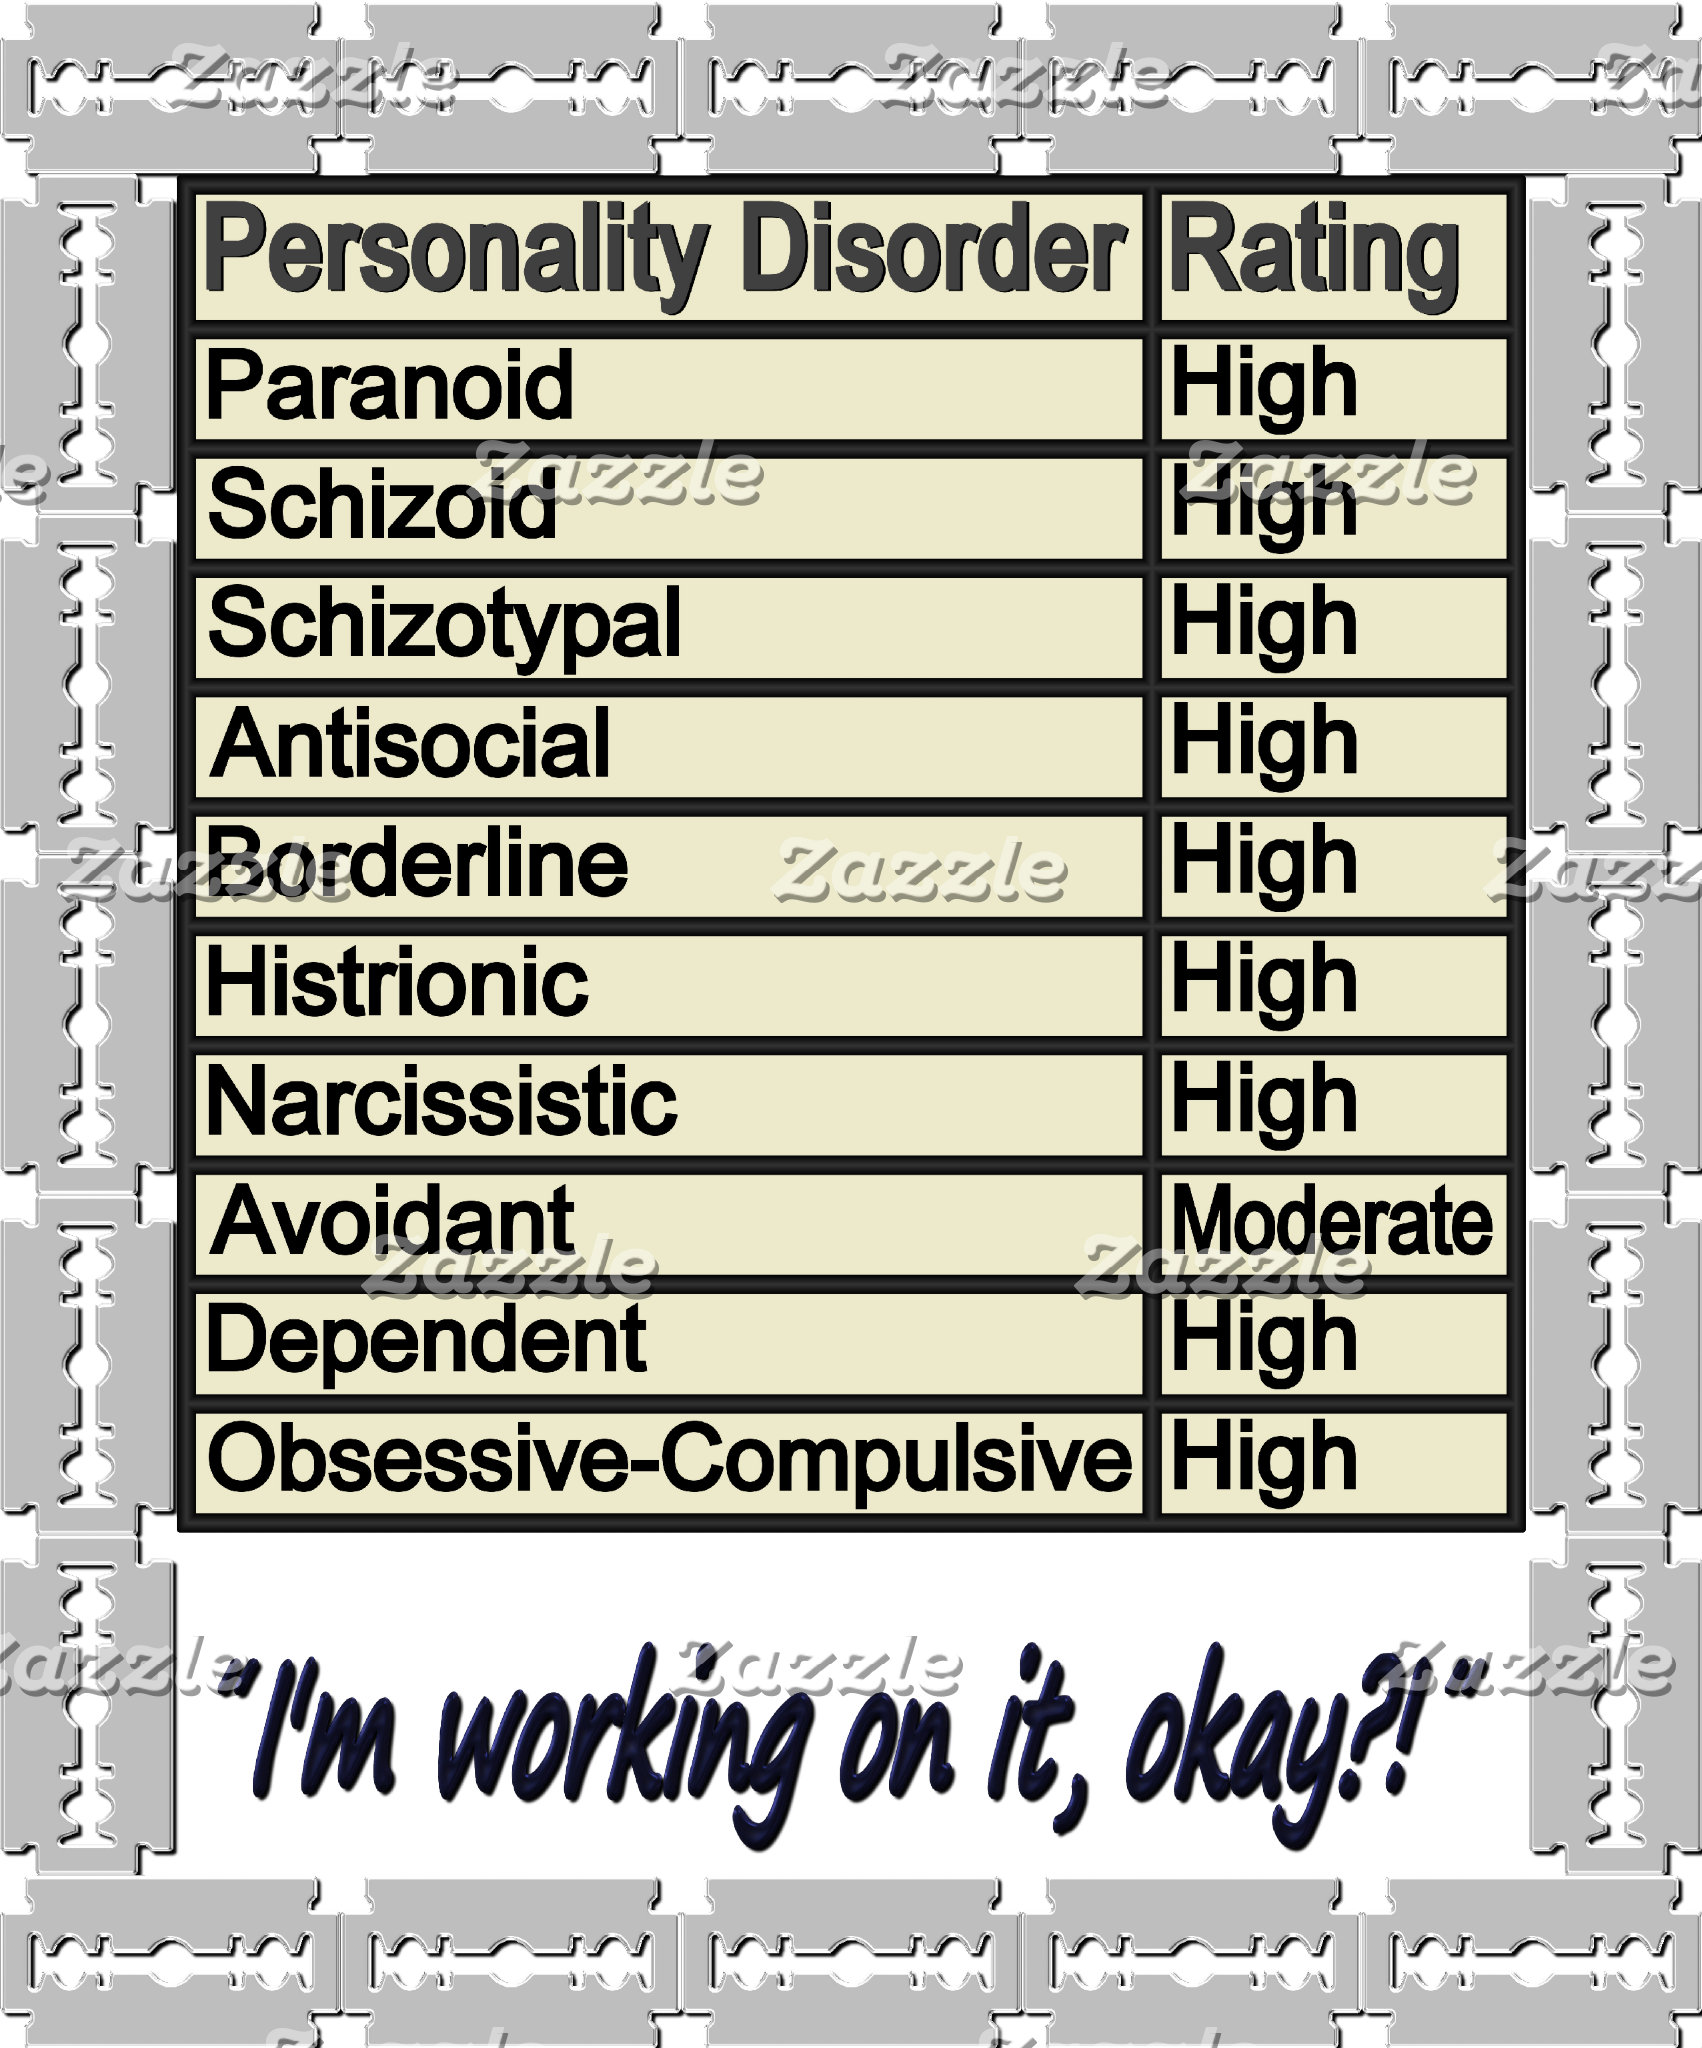 Person Disorders 2